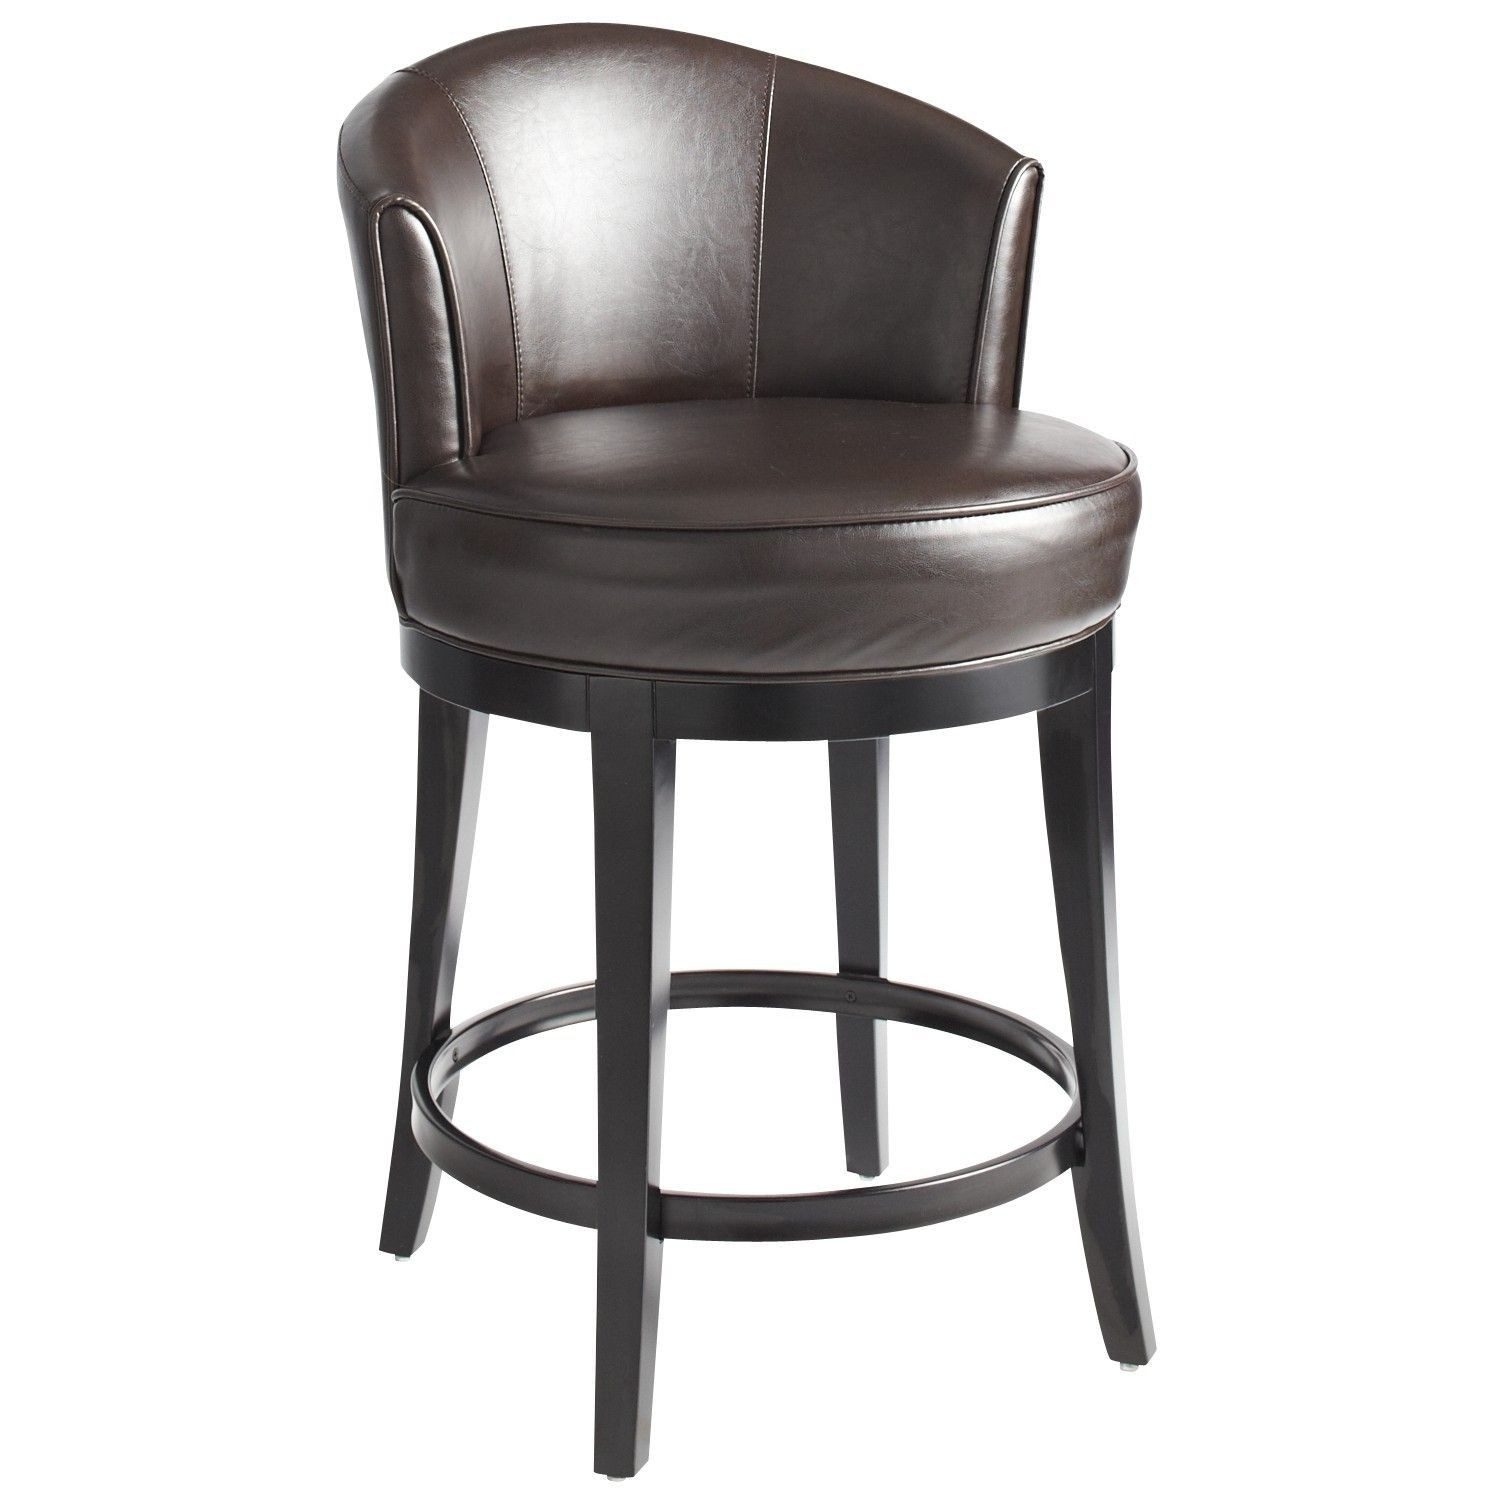 Leather Swivel Bar Stools With Back